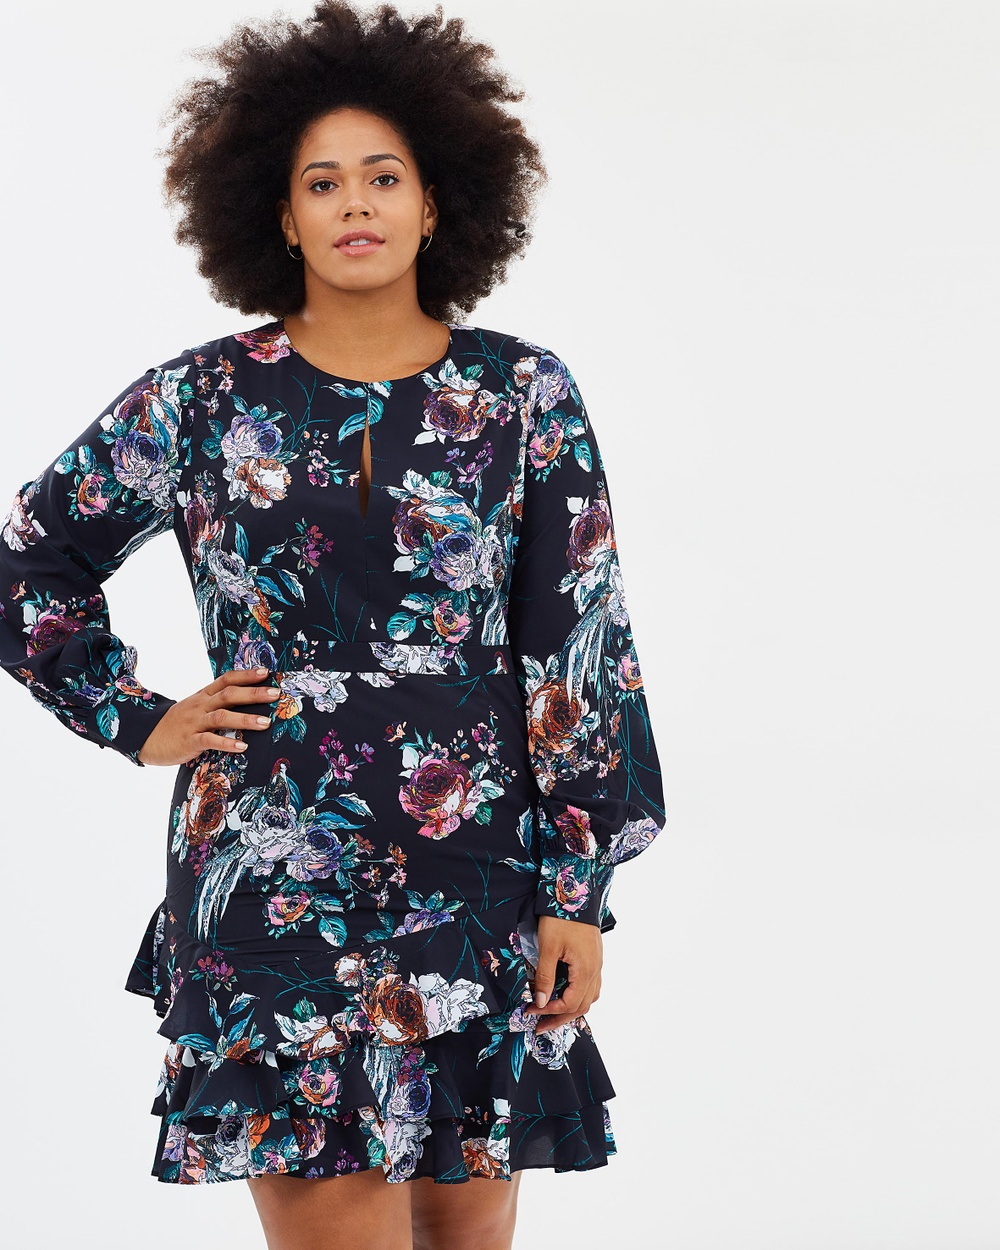 Cooper St CS CURVY Botanical Long Sleeve Dress Printed Dresses Print Dark CS CURVY Botanical Long Sleeve Dress